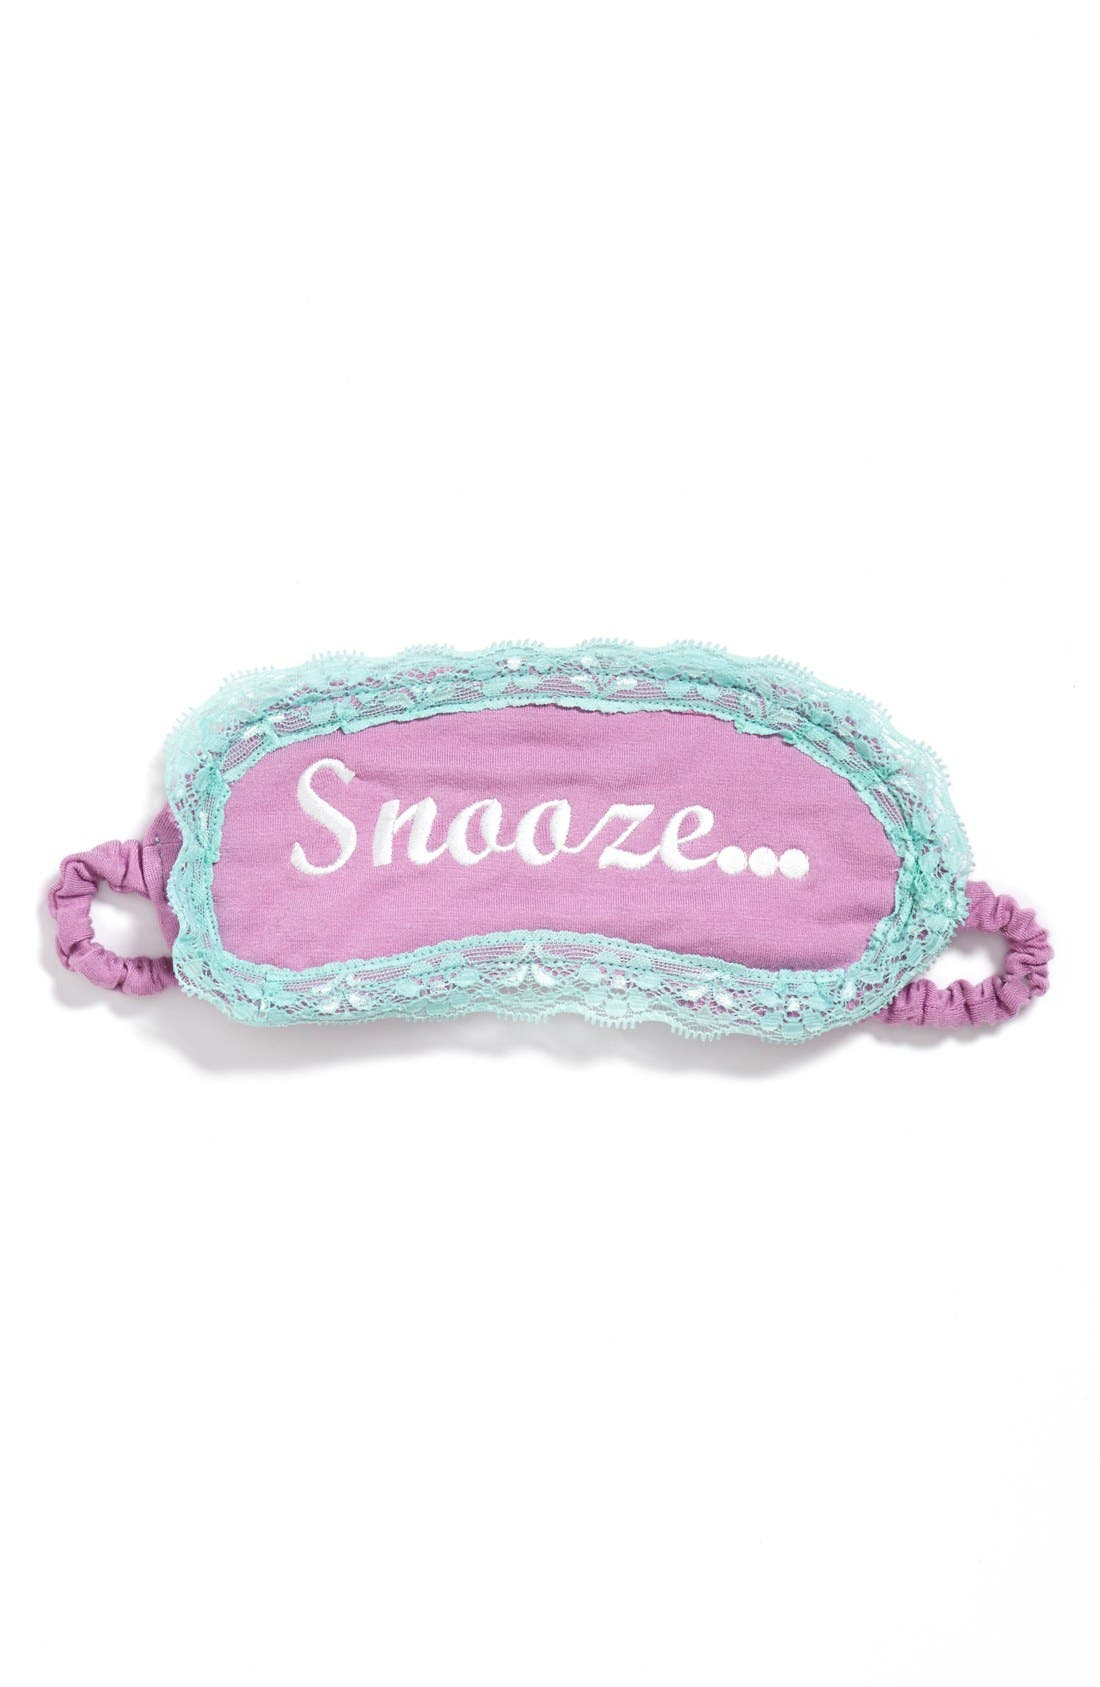 Alternate Image 1 Selected - PJ Salvage Embroidered Lace Trim Eye Mask